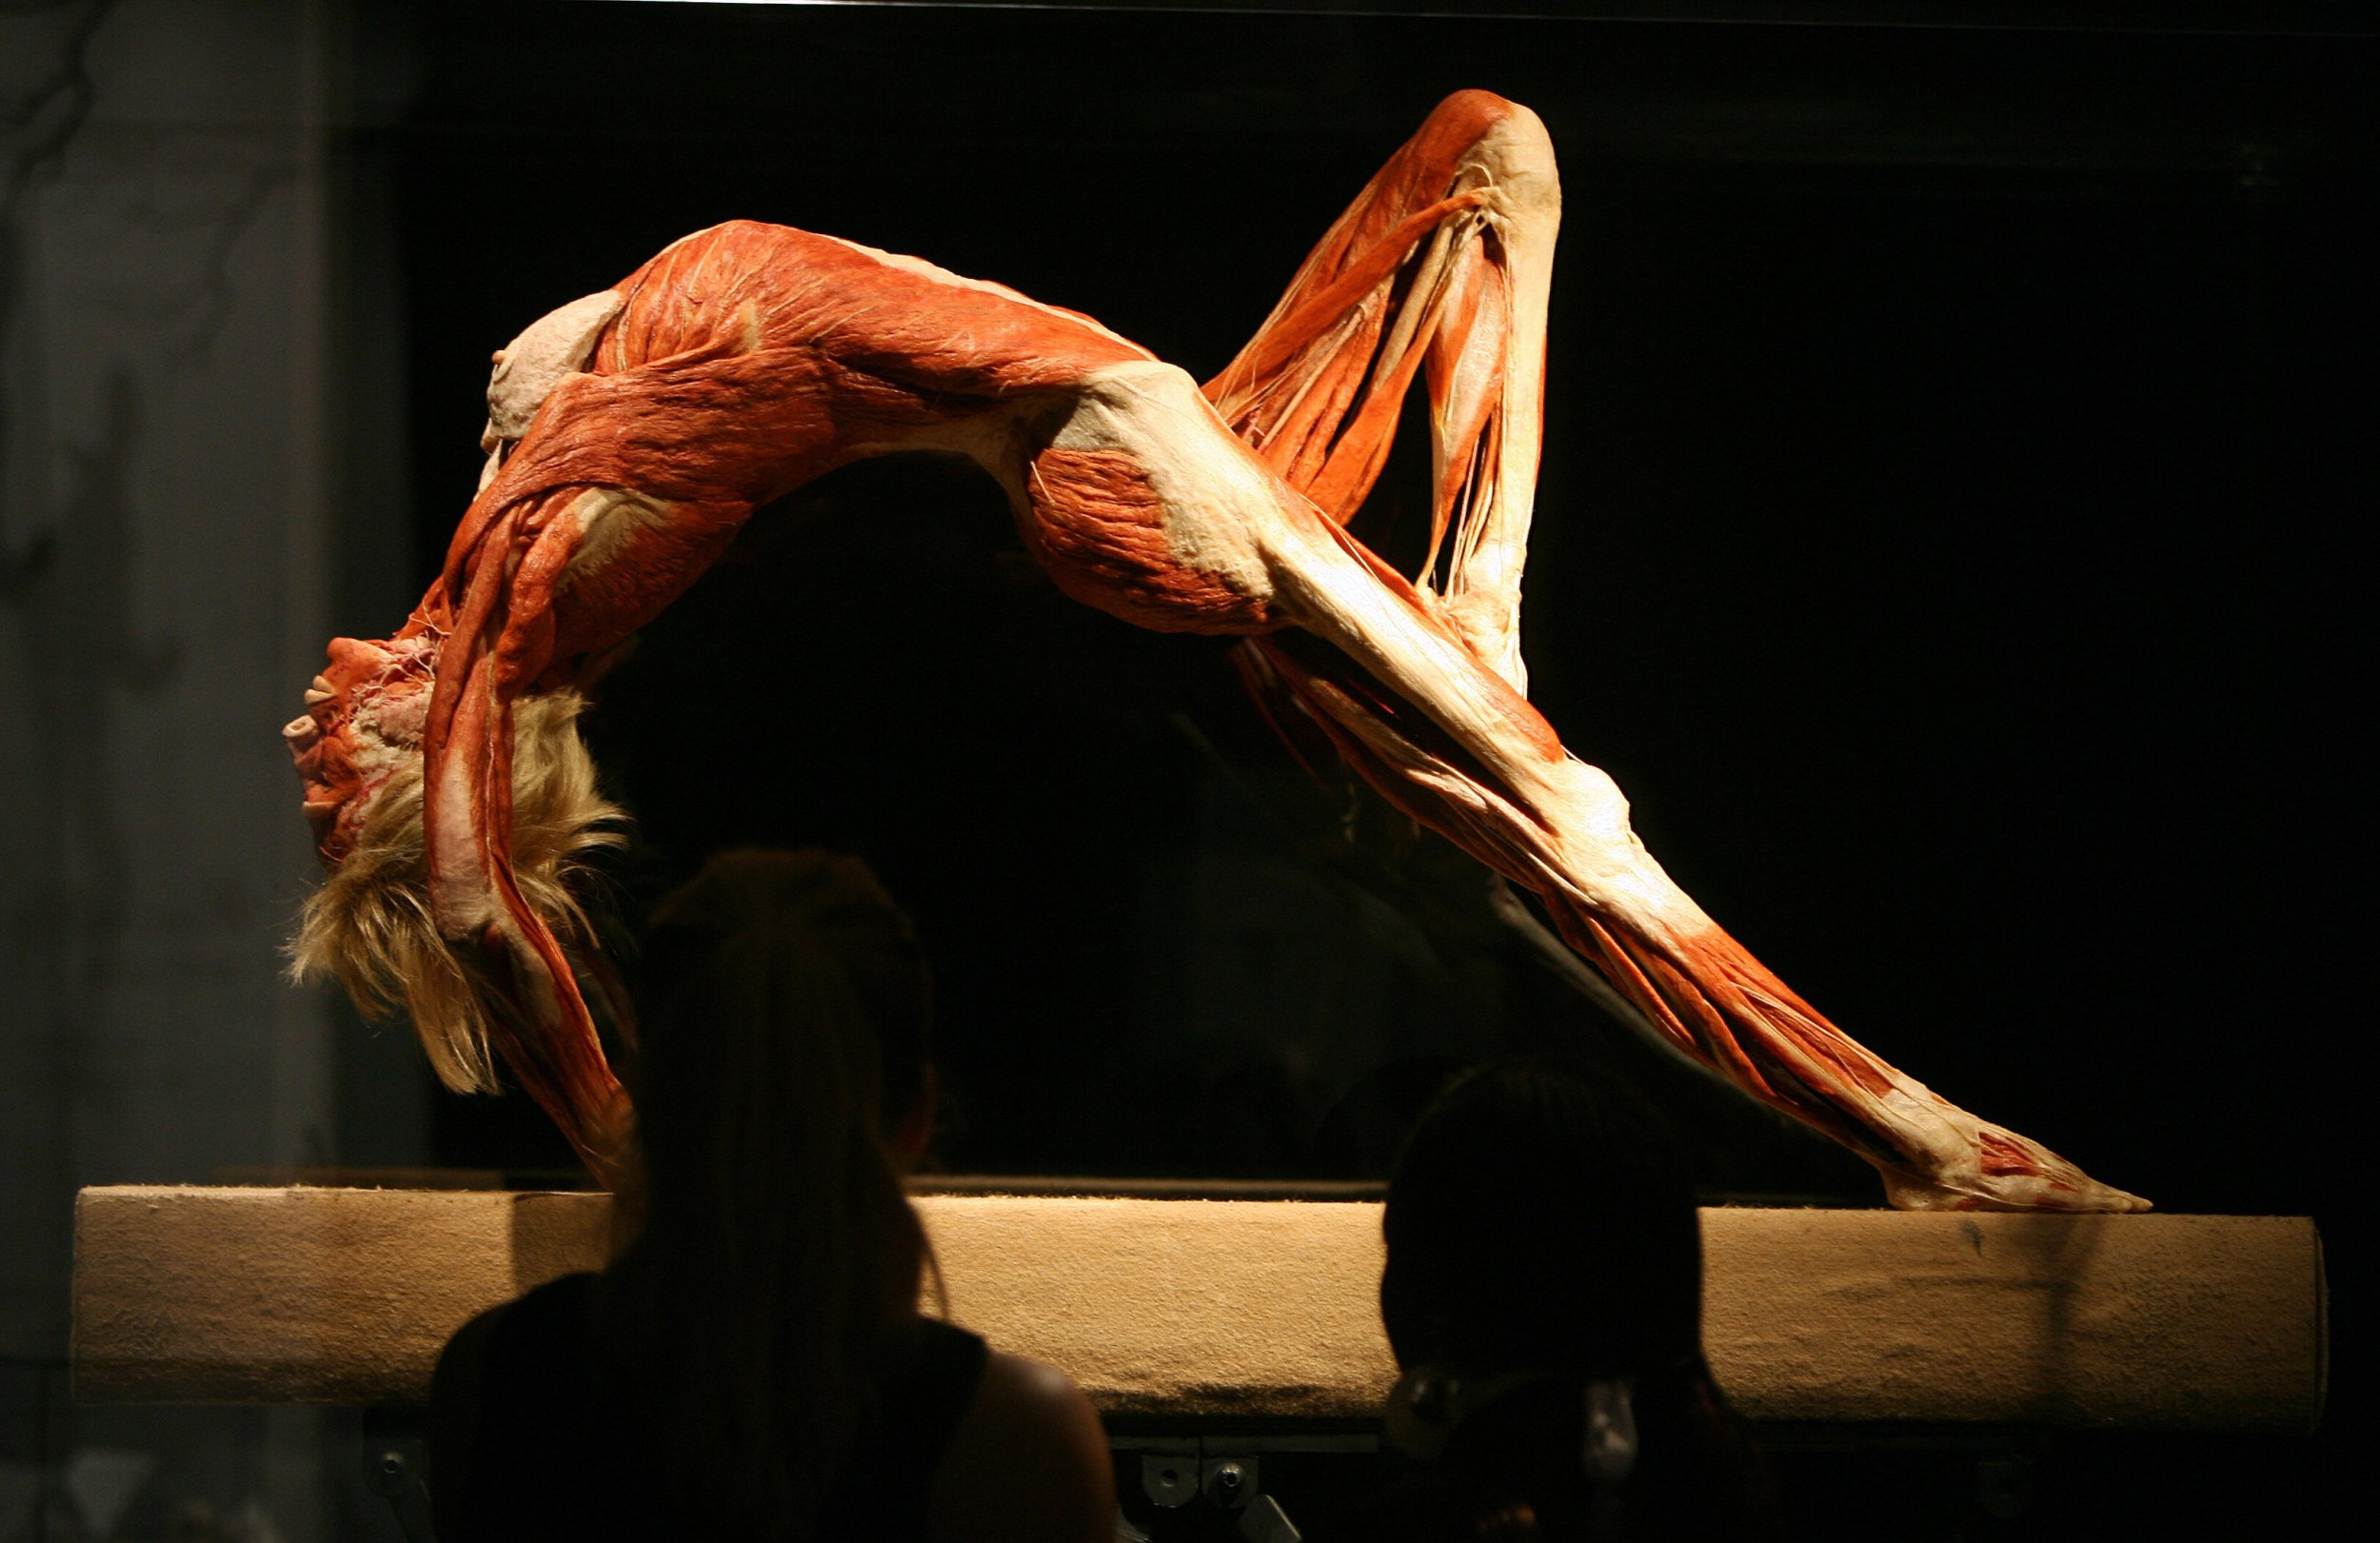 go to exhibition Heidelberg The new BODY WORLDS Museum is devoted to the Anatomy of Happiness and shows the astounding effects of happiness on our wellbeing and health.